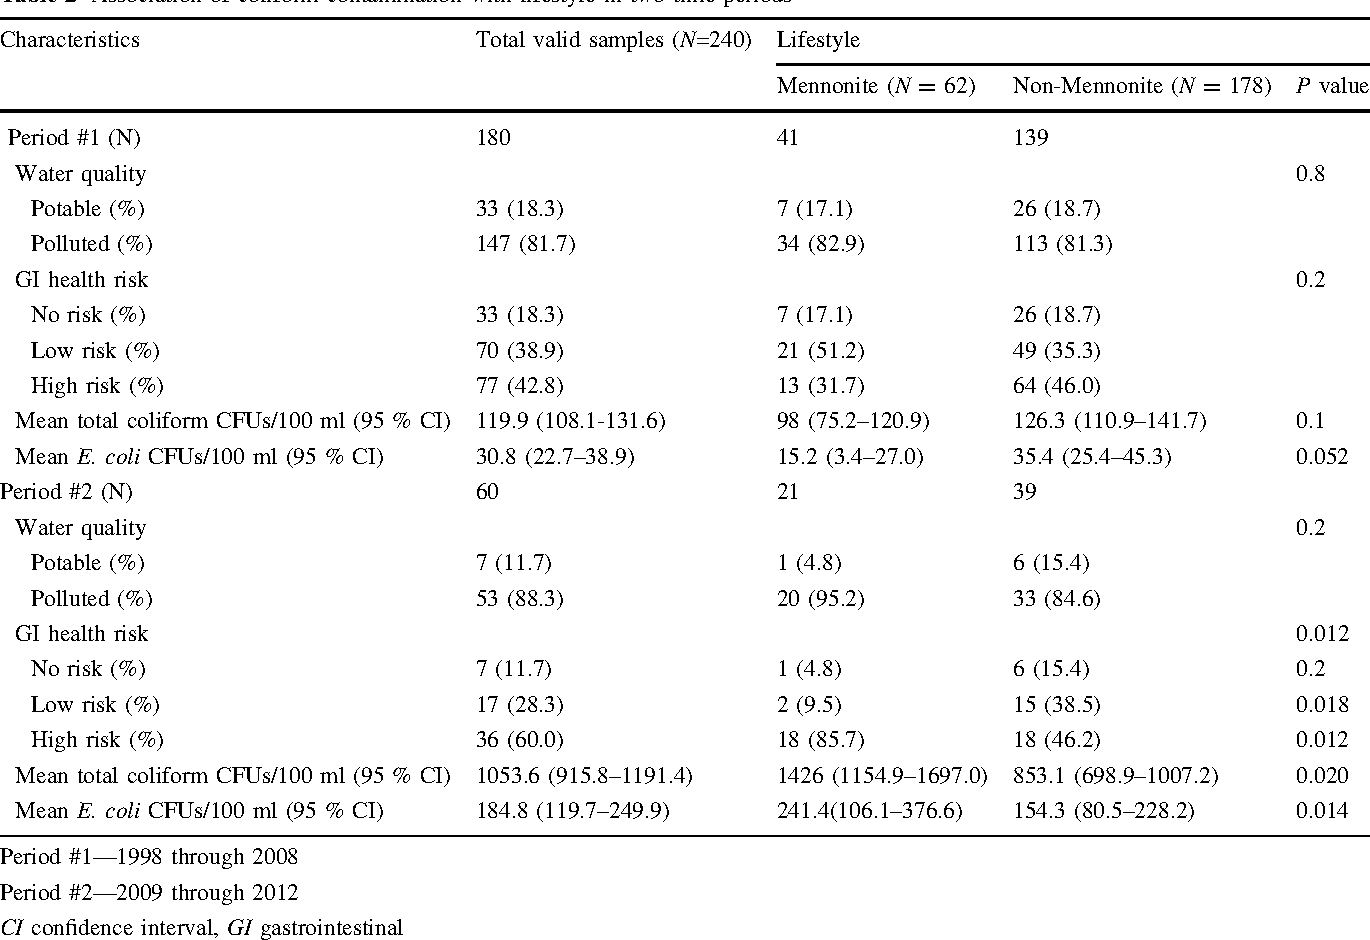 Table 2 Association of coliform contamination with lifestyle in two time periods